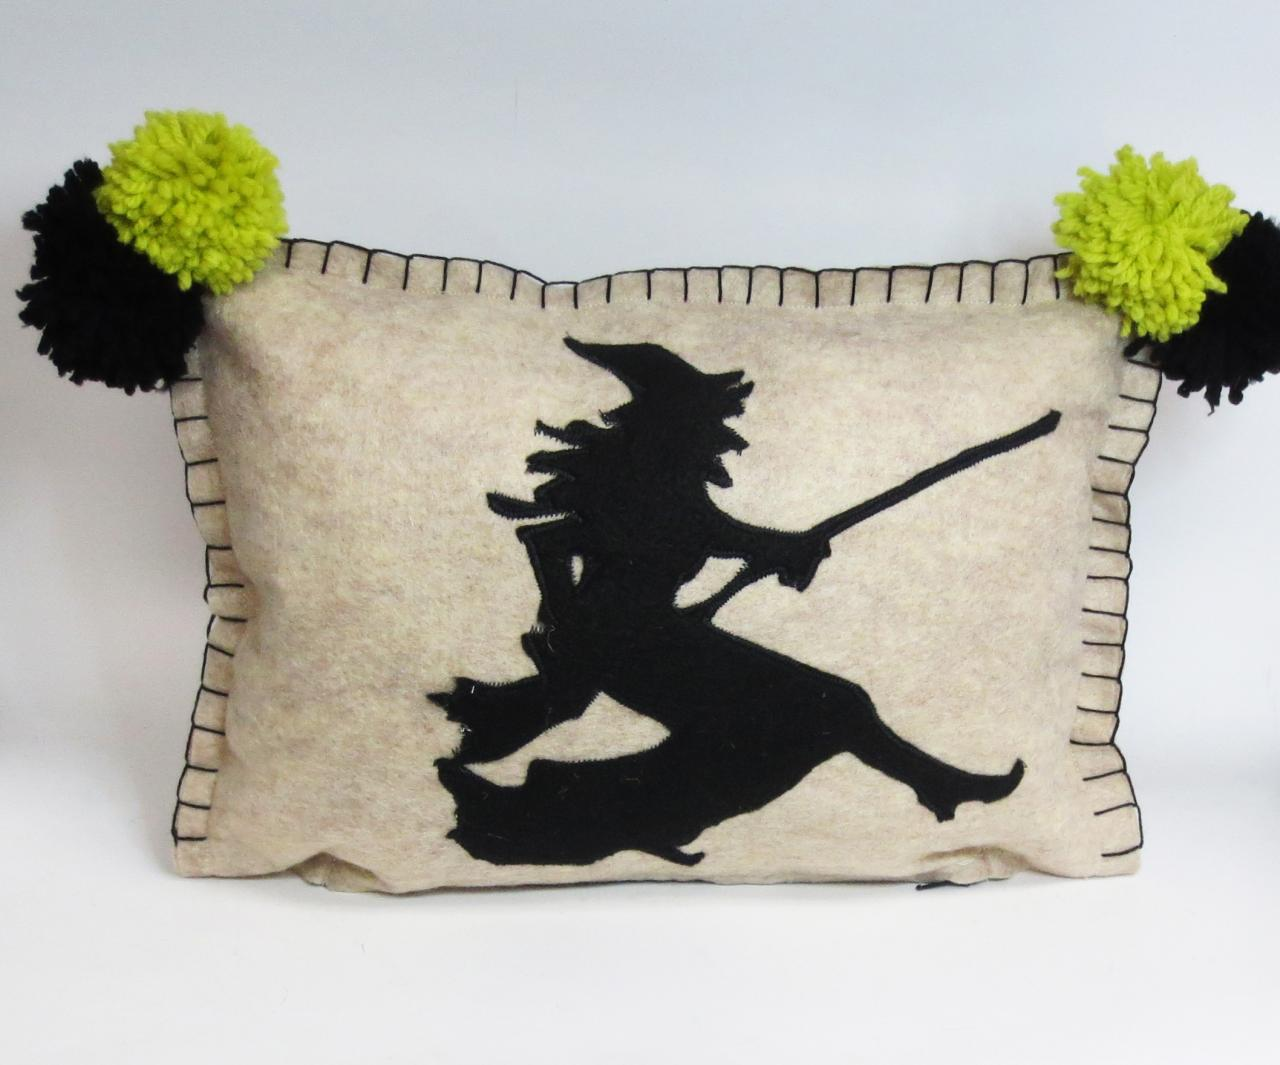 Beige Felt Silhouette Witch Pillow with Bright Green Accents